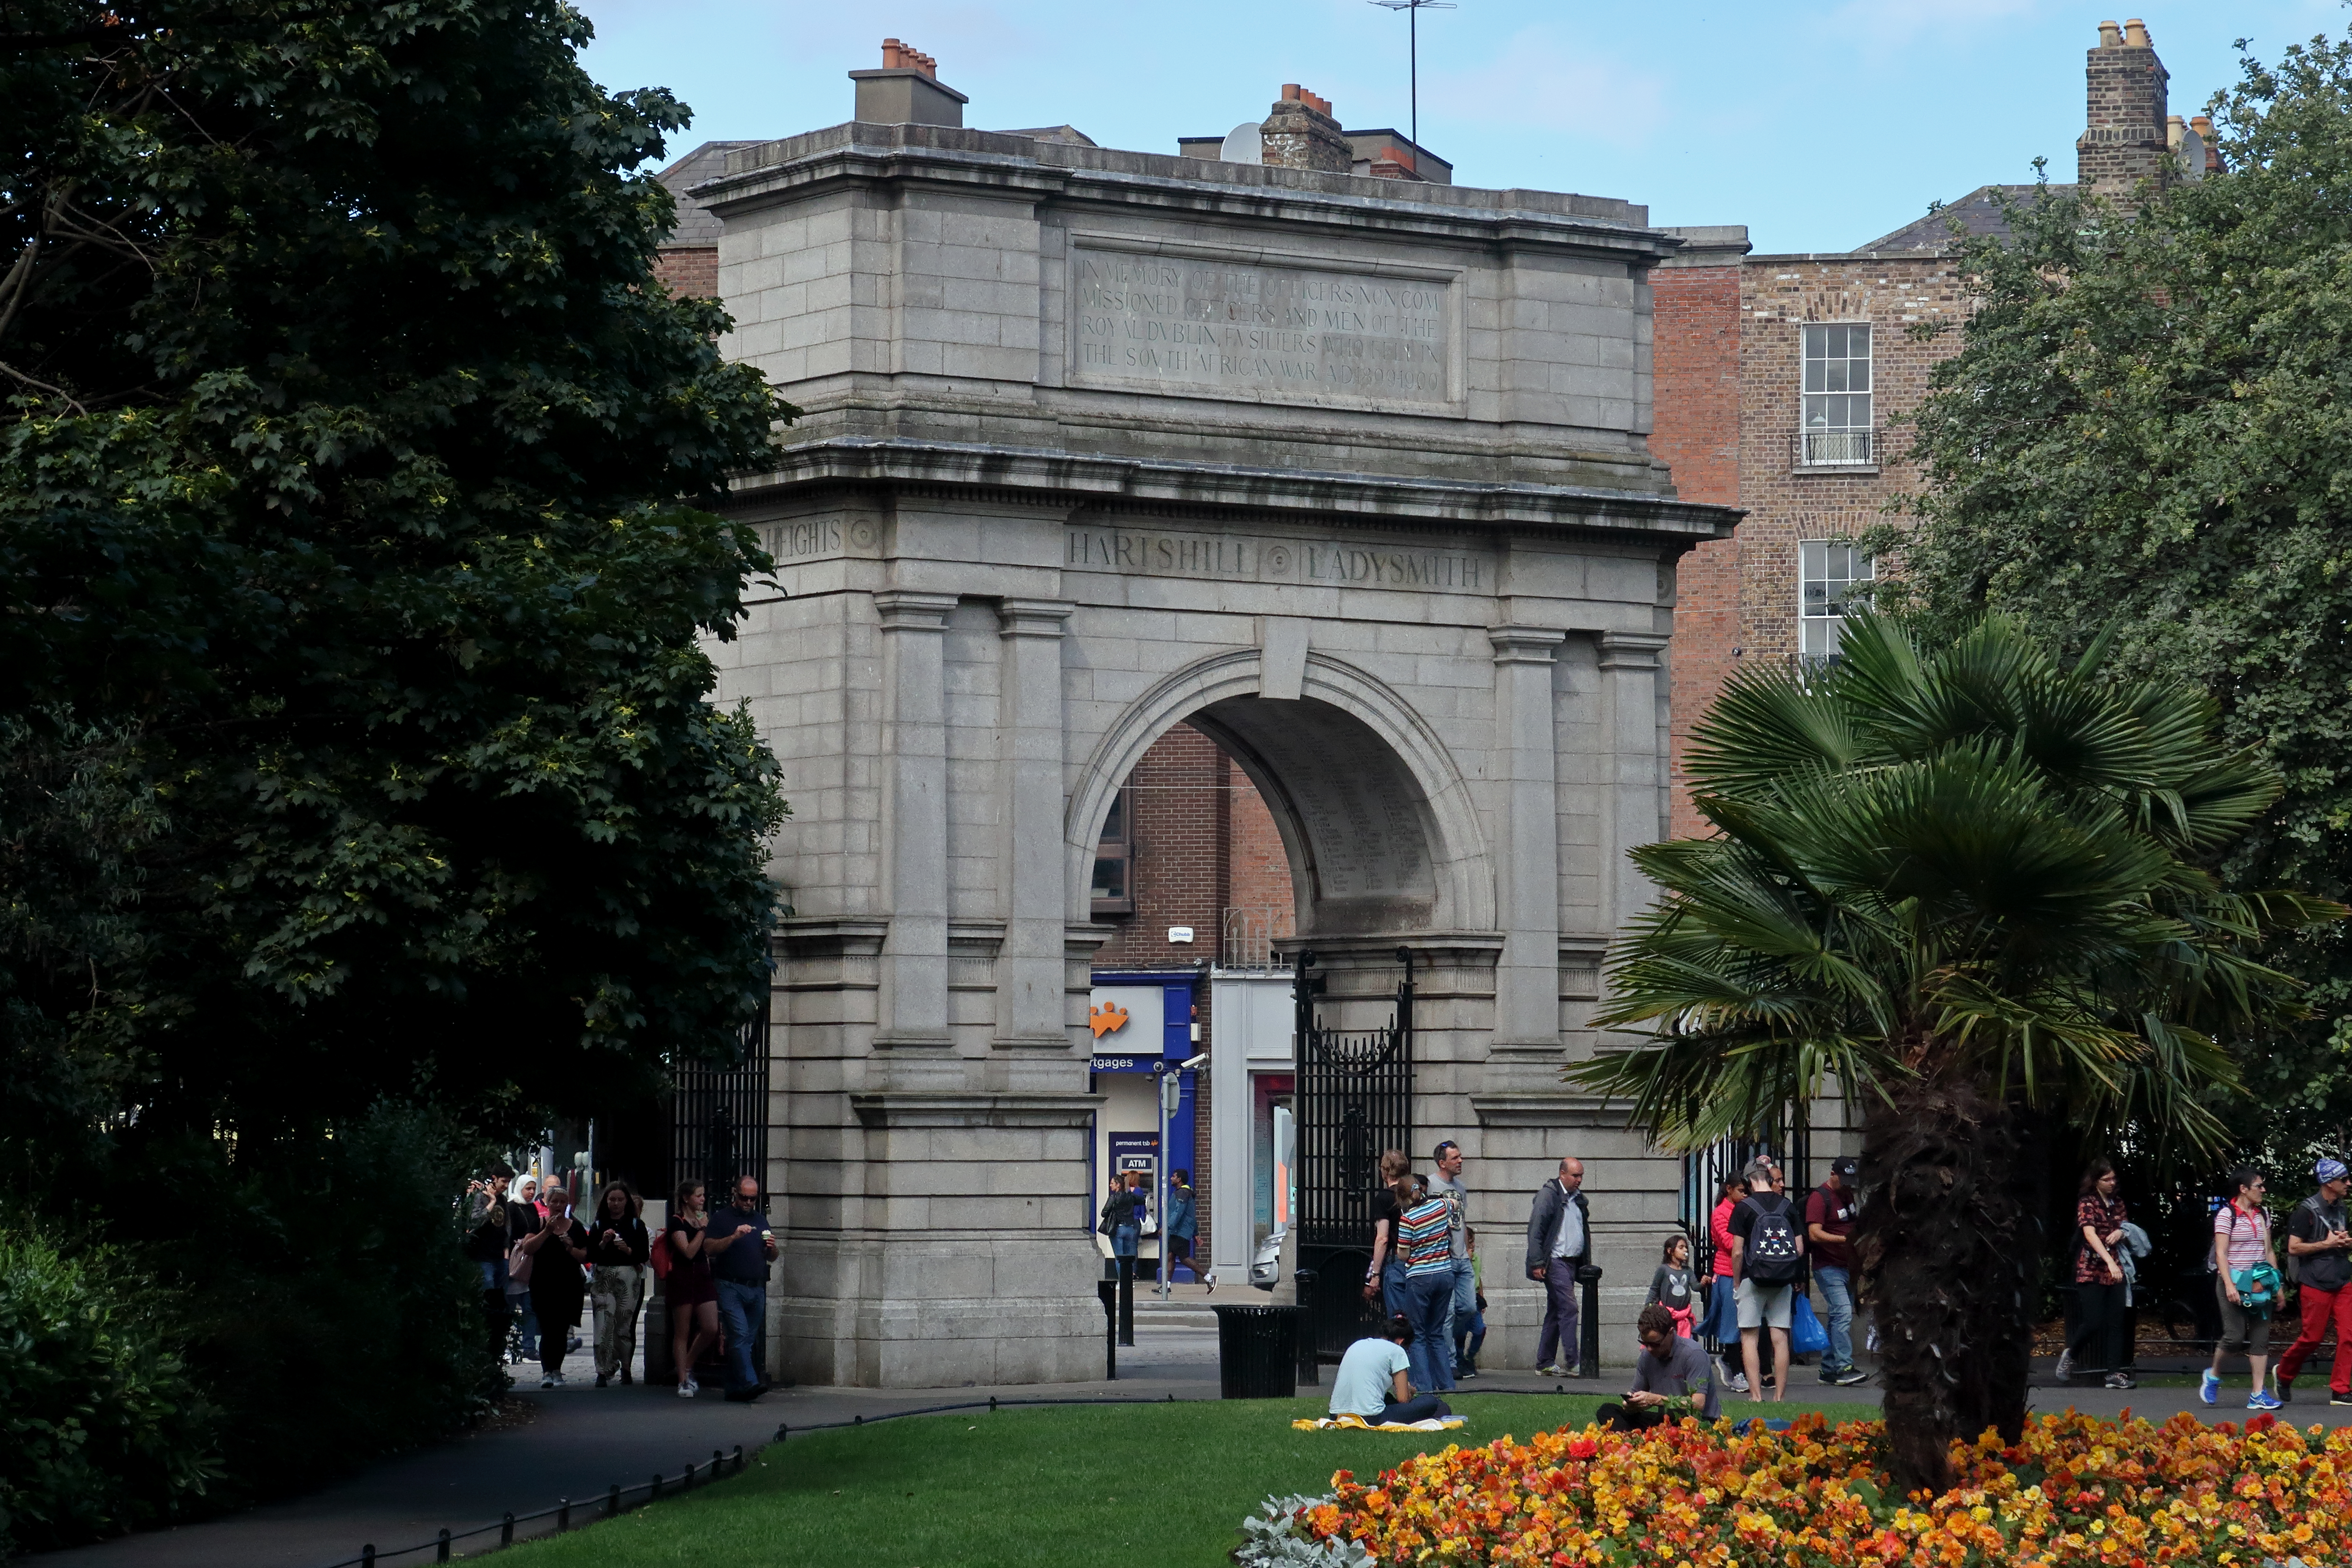 51 Fusiliers Arch from the park